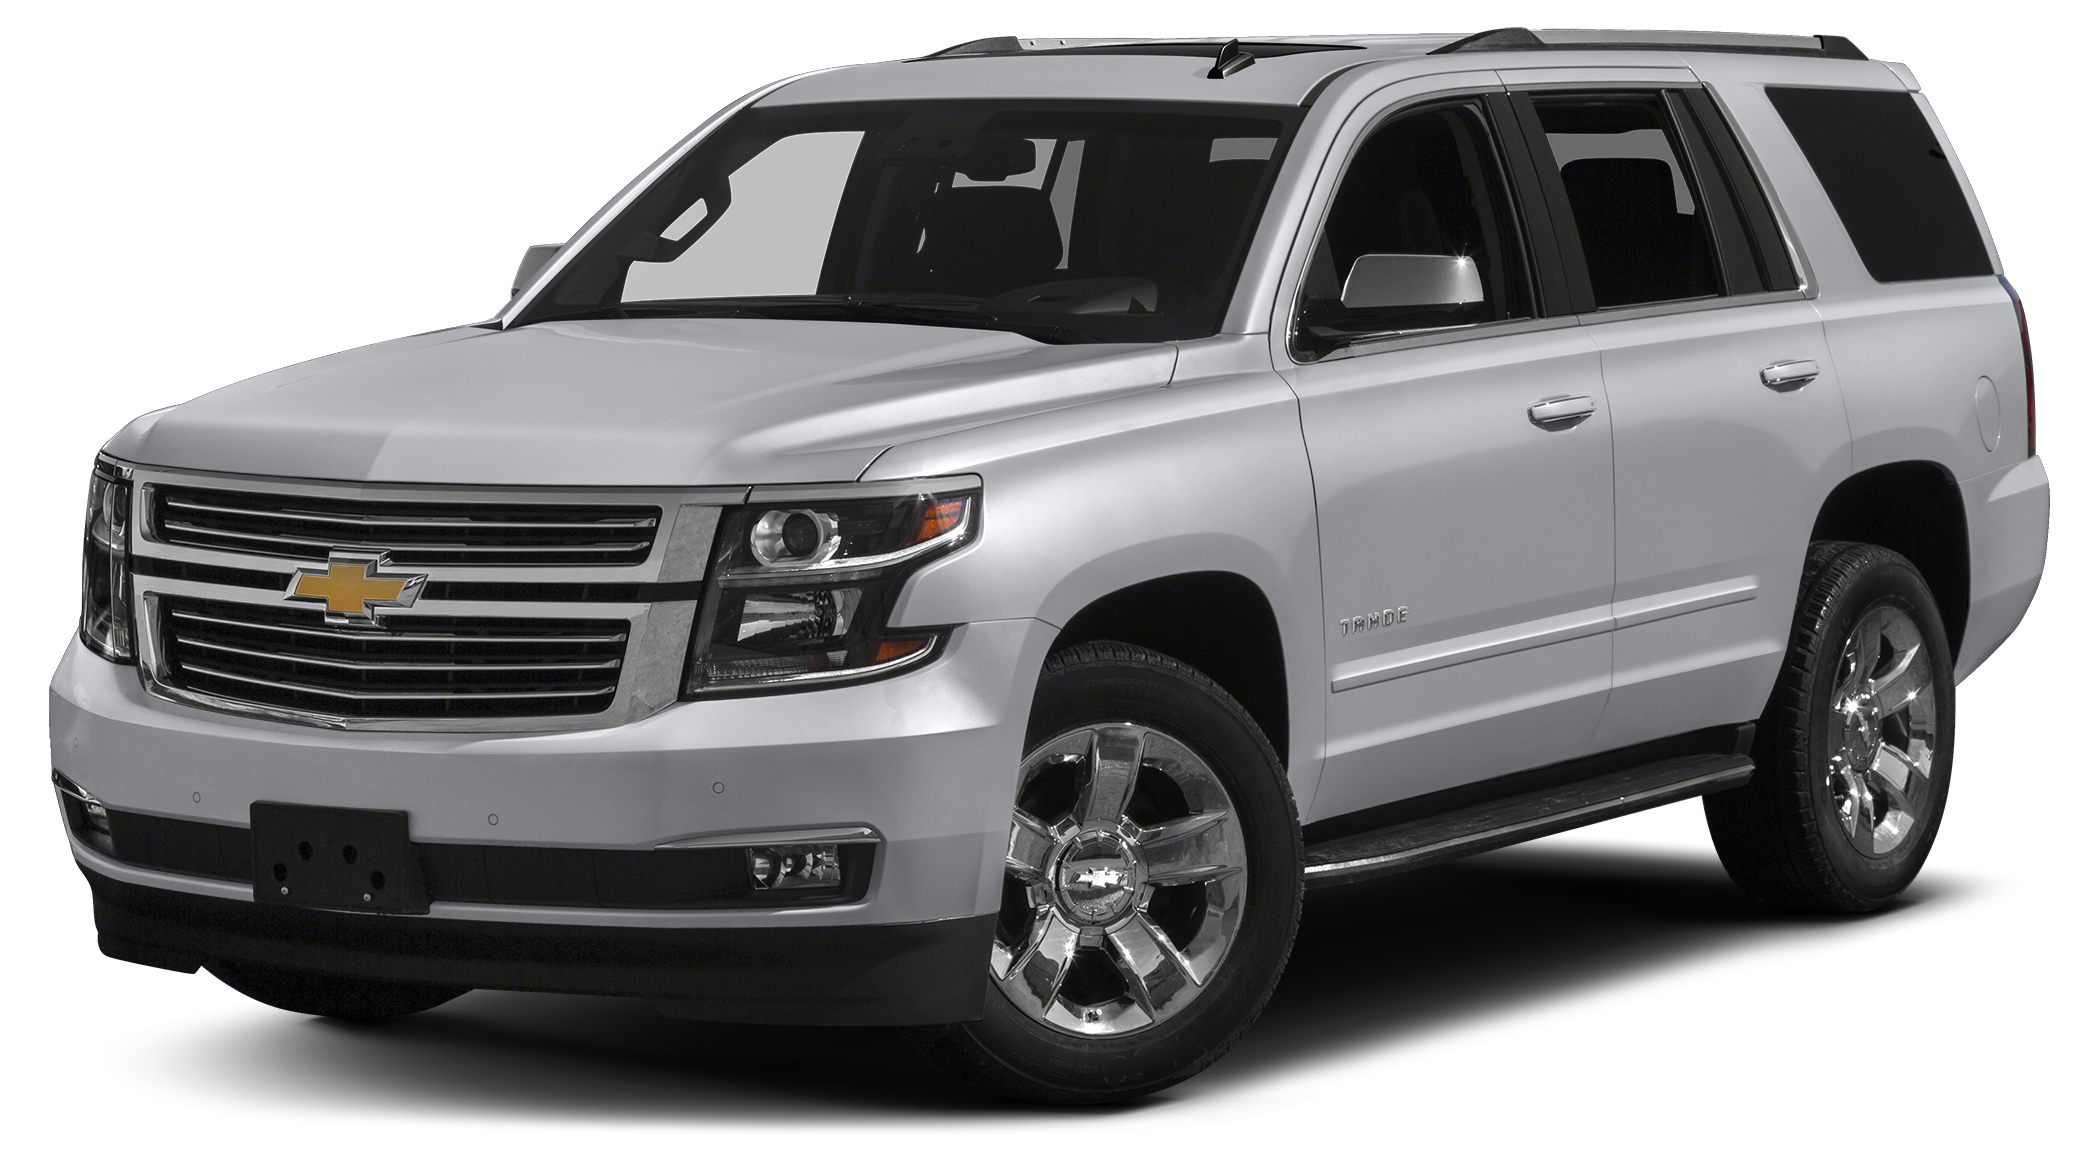 2015 Chevrolet Tahoe LT Price includes 1000 - GM Loyalty Private Offer Exp 0302 Miles 12Col